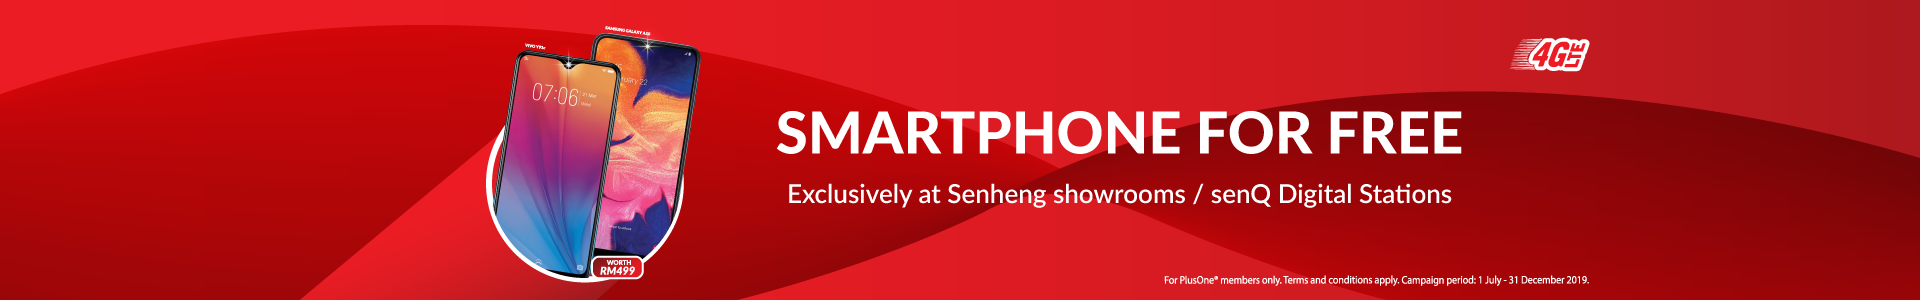 Exclusively available at all Senheng showrooms & senQ Digital stations!